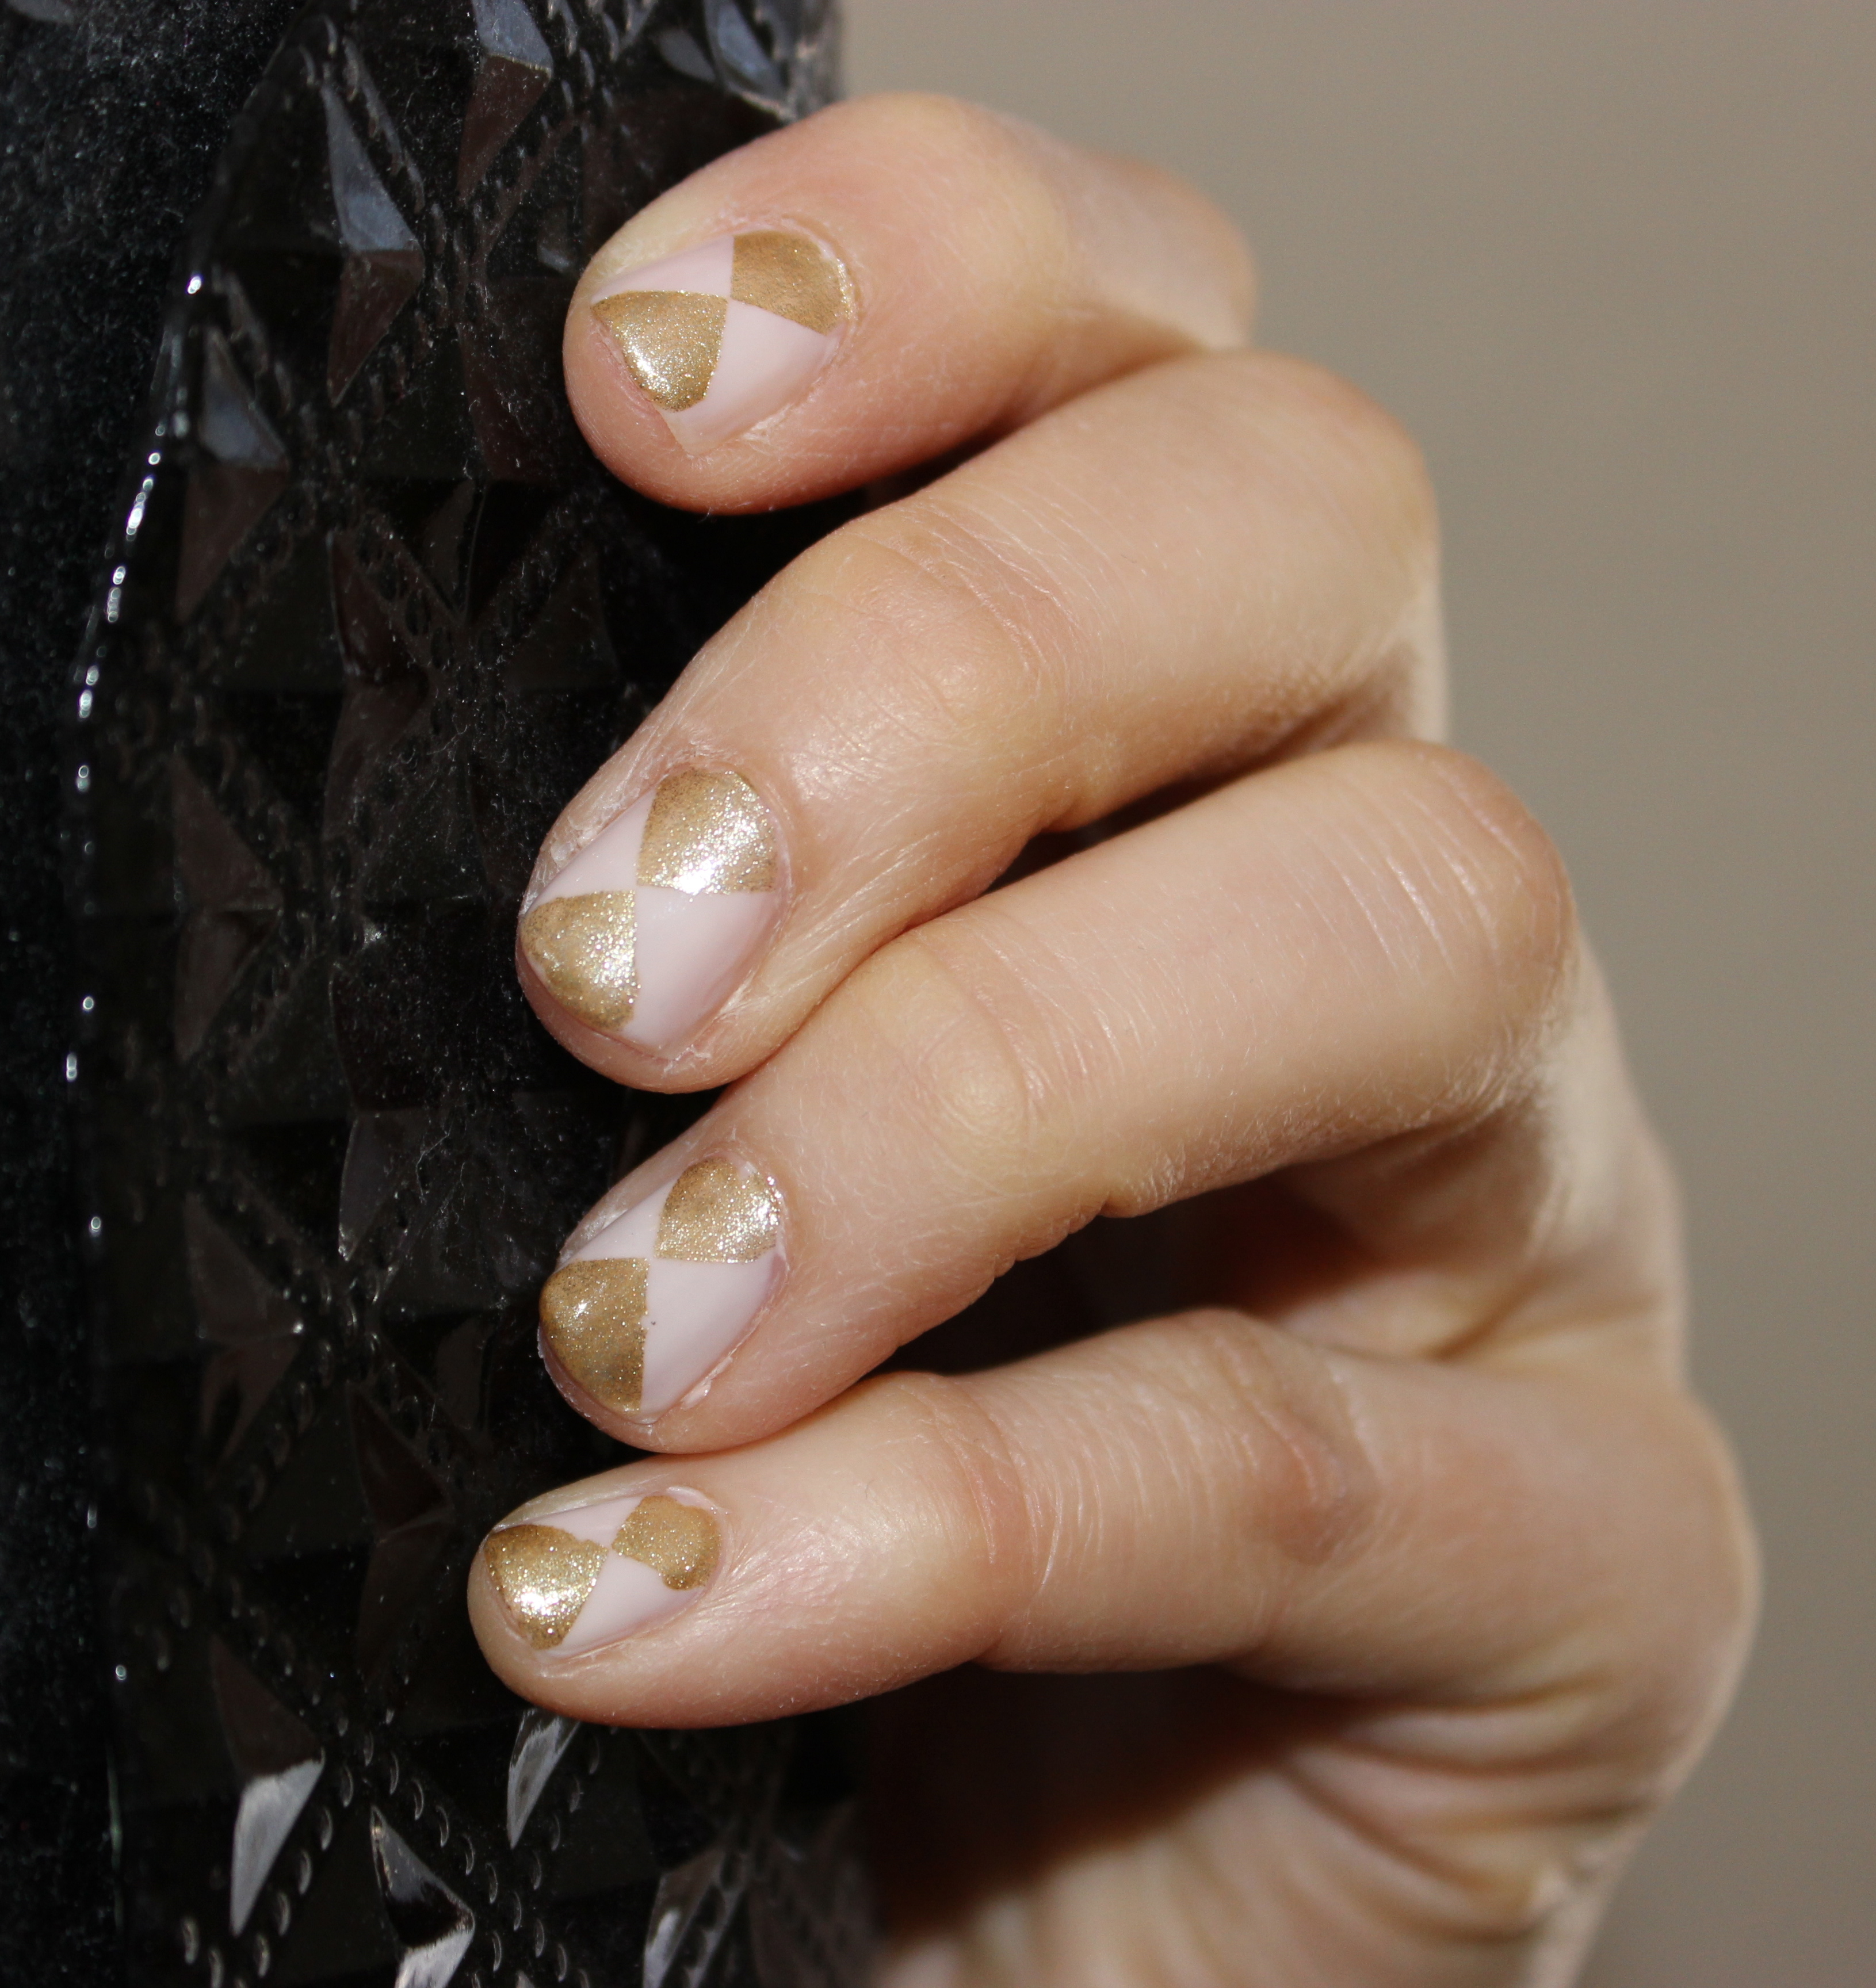 Lacy Wedding Bridal Nail Design Butter London Sweet Somethings Set Review Curious Coquette